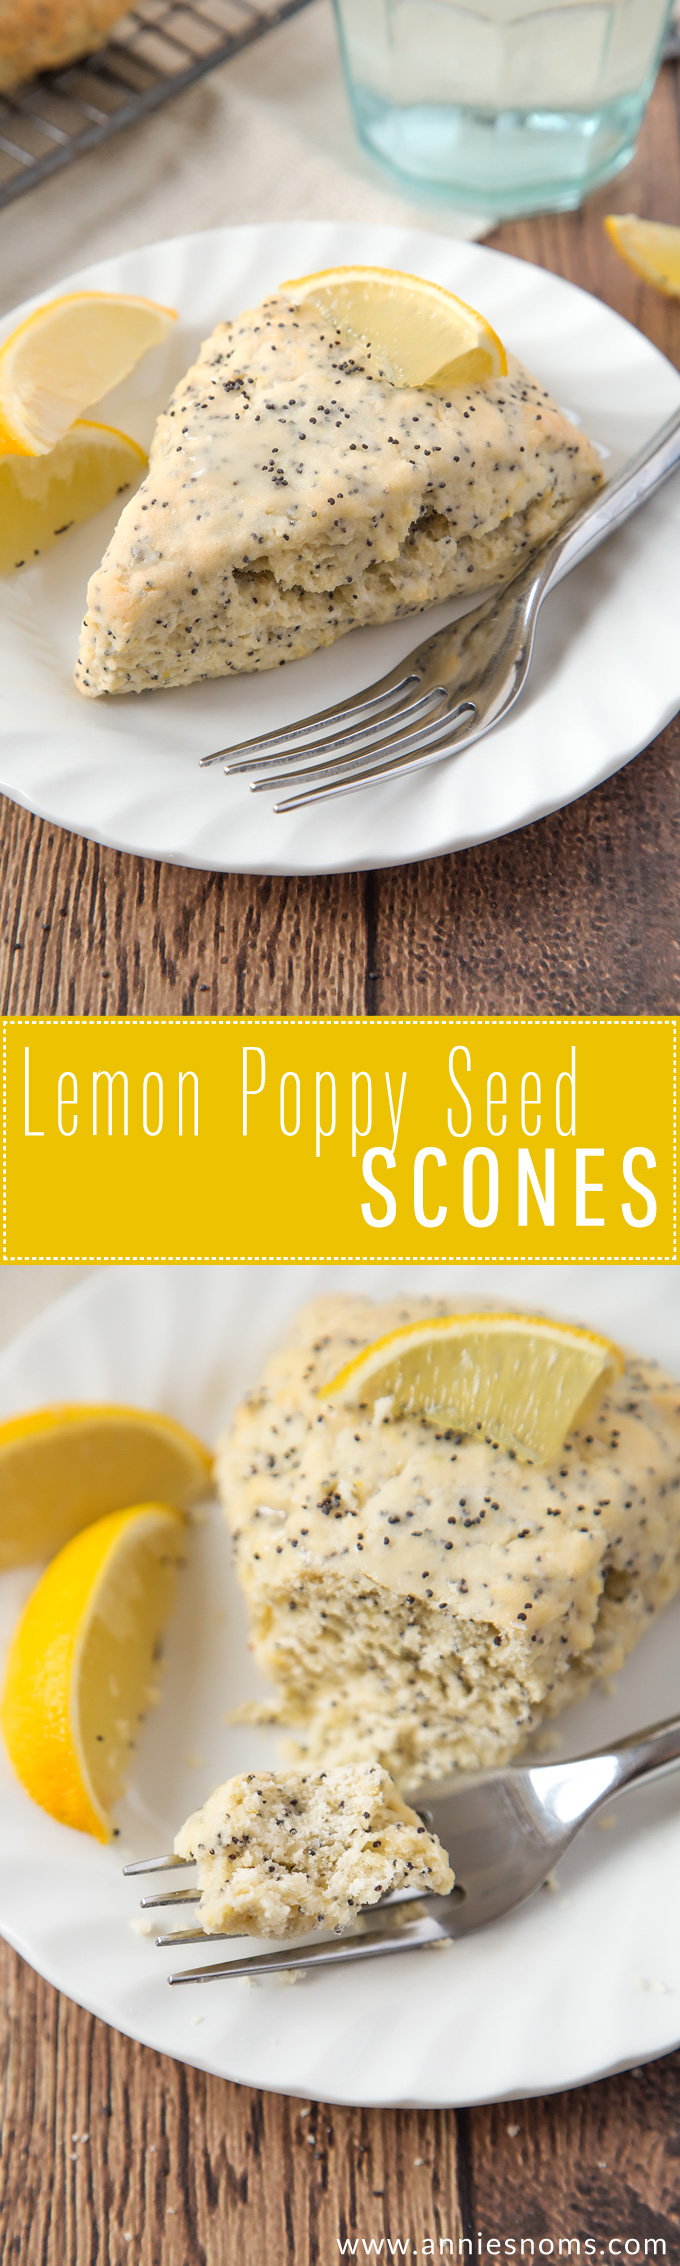 These light, flaky and citrus filled Lemon Poppy Seed scones are a cinch to make and are the perfect breakfast for a dull January morning!